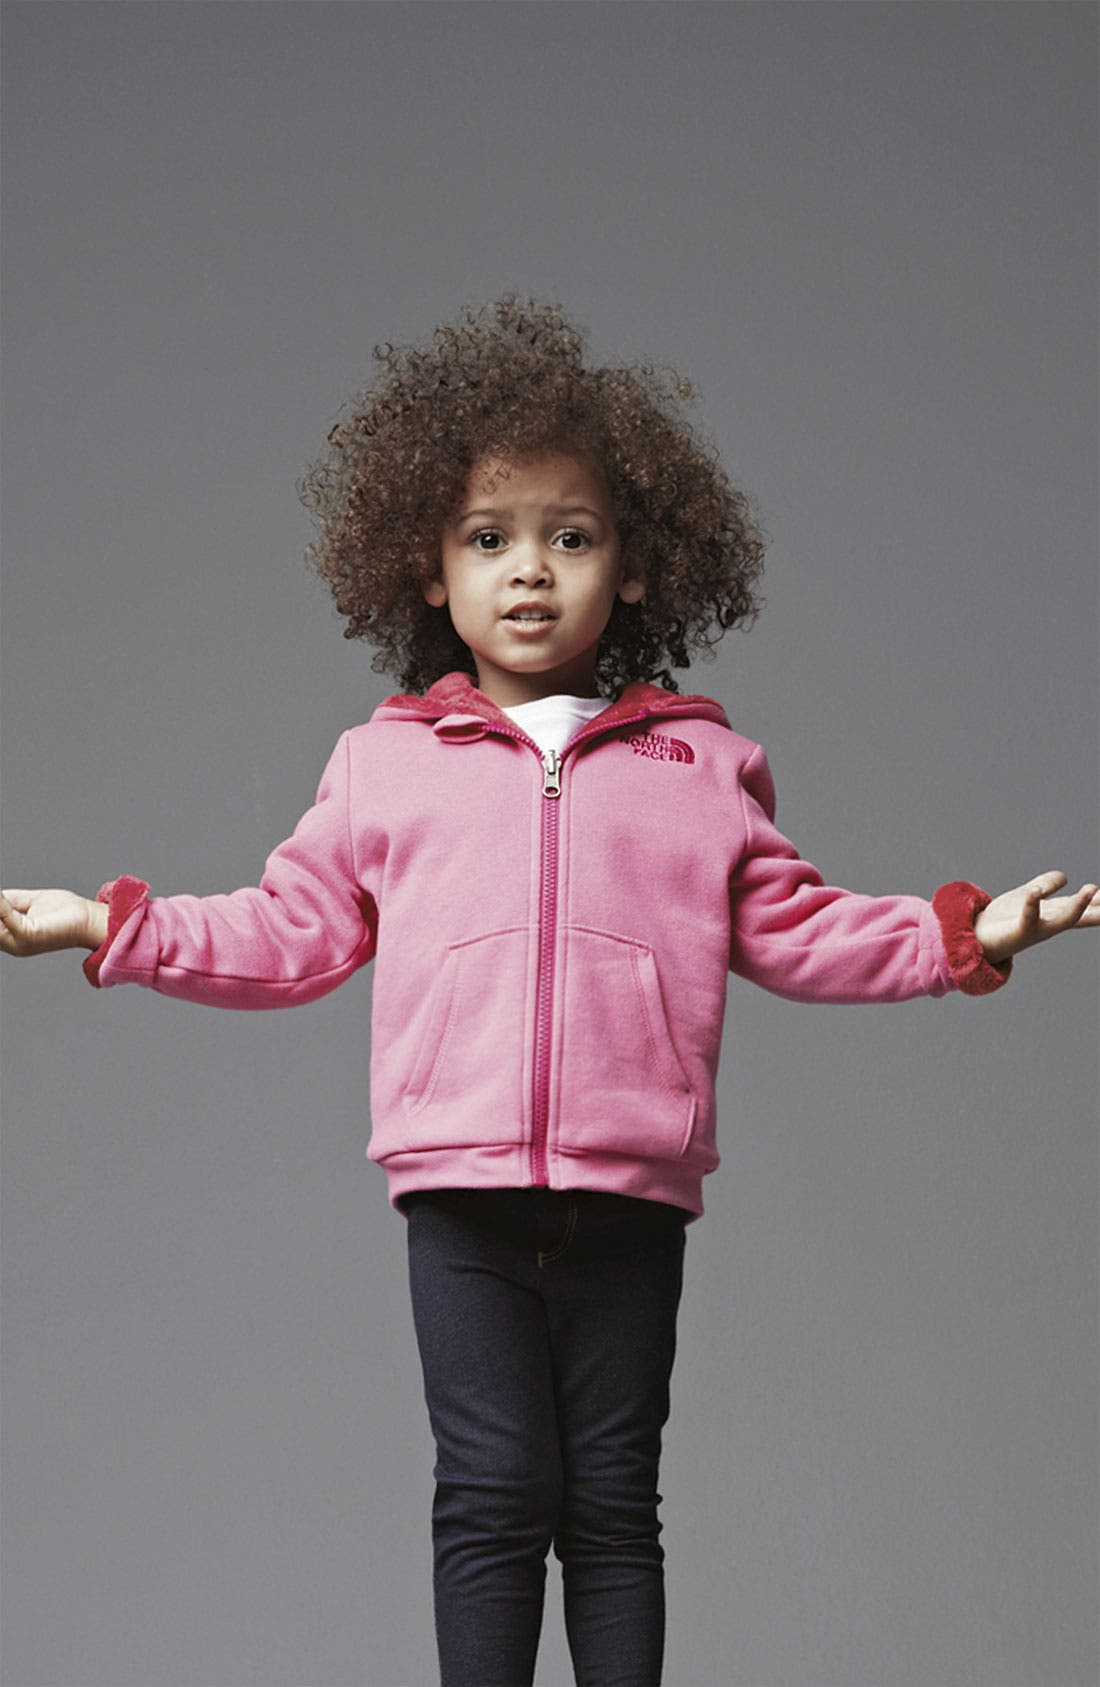 Alternate Image 1 Selected - The North Face Hoodie & United Colors of Benetton Jeggings(Infant)